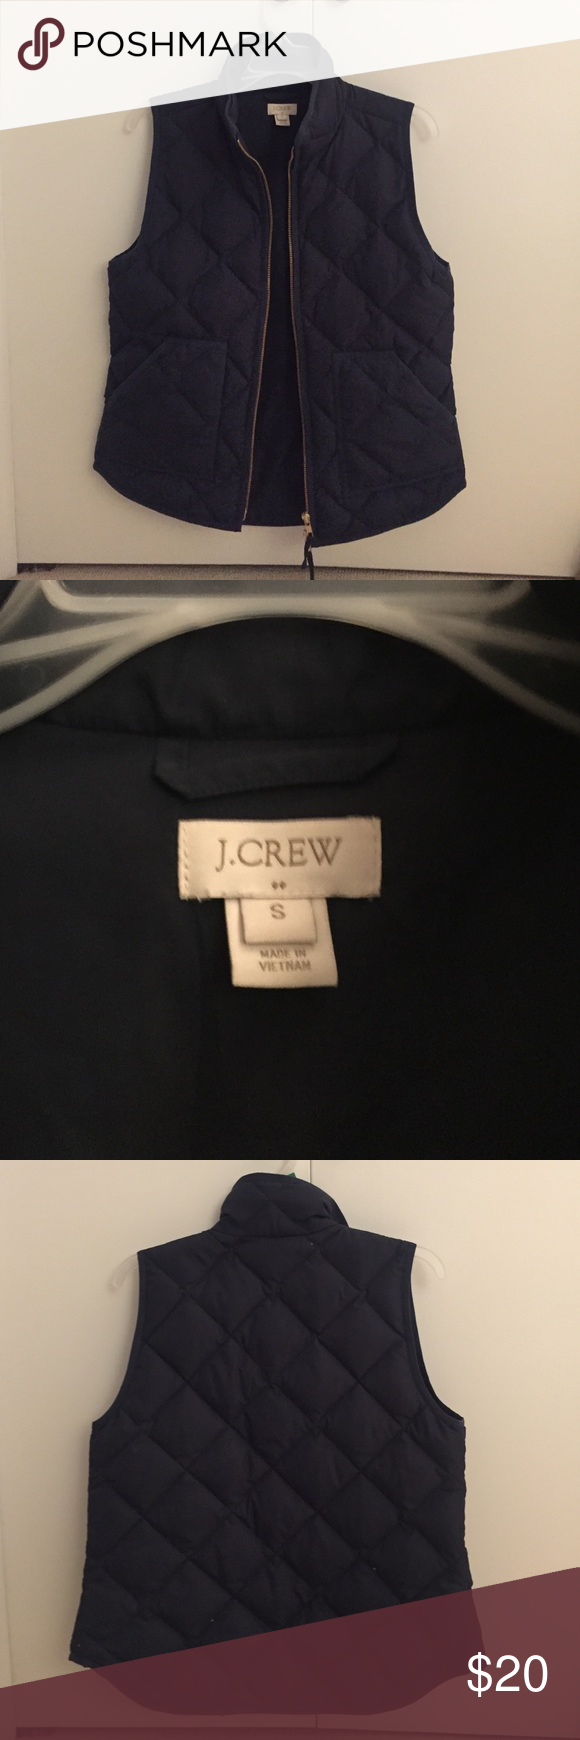 J Crew Factory Navy Quilted Vest One season-worn J Crew Factory quilted vest. The perfect accessory for fall! Super cute navy vest with 2 pockets. Perfect for fall afternoons with jeans and boots. Excellent condition. J. Crew Factory Jackets & Coats Vests